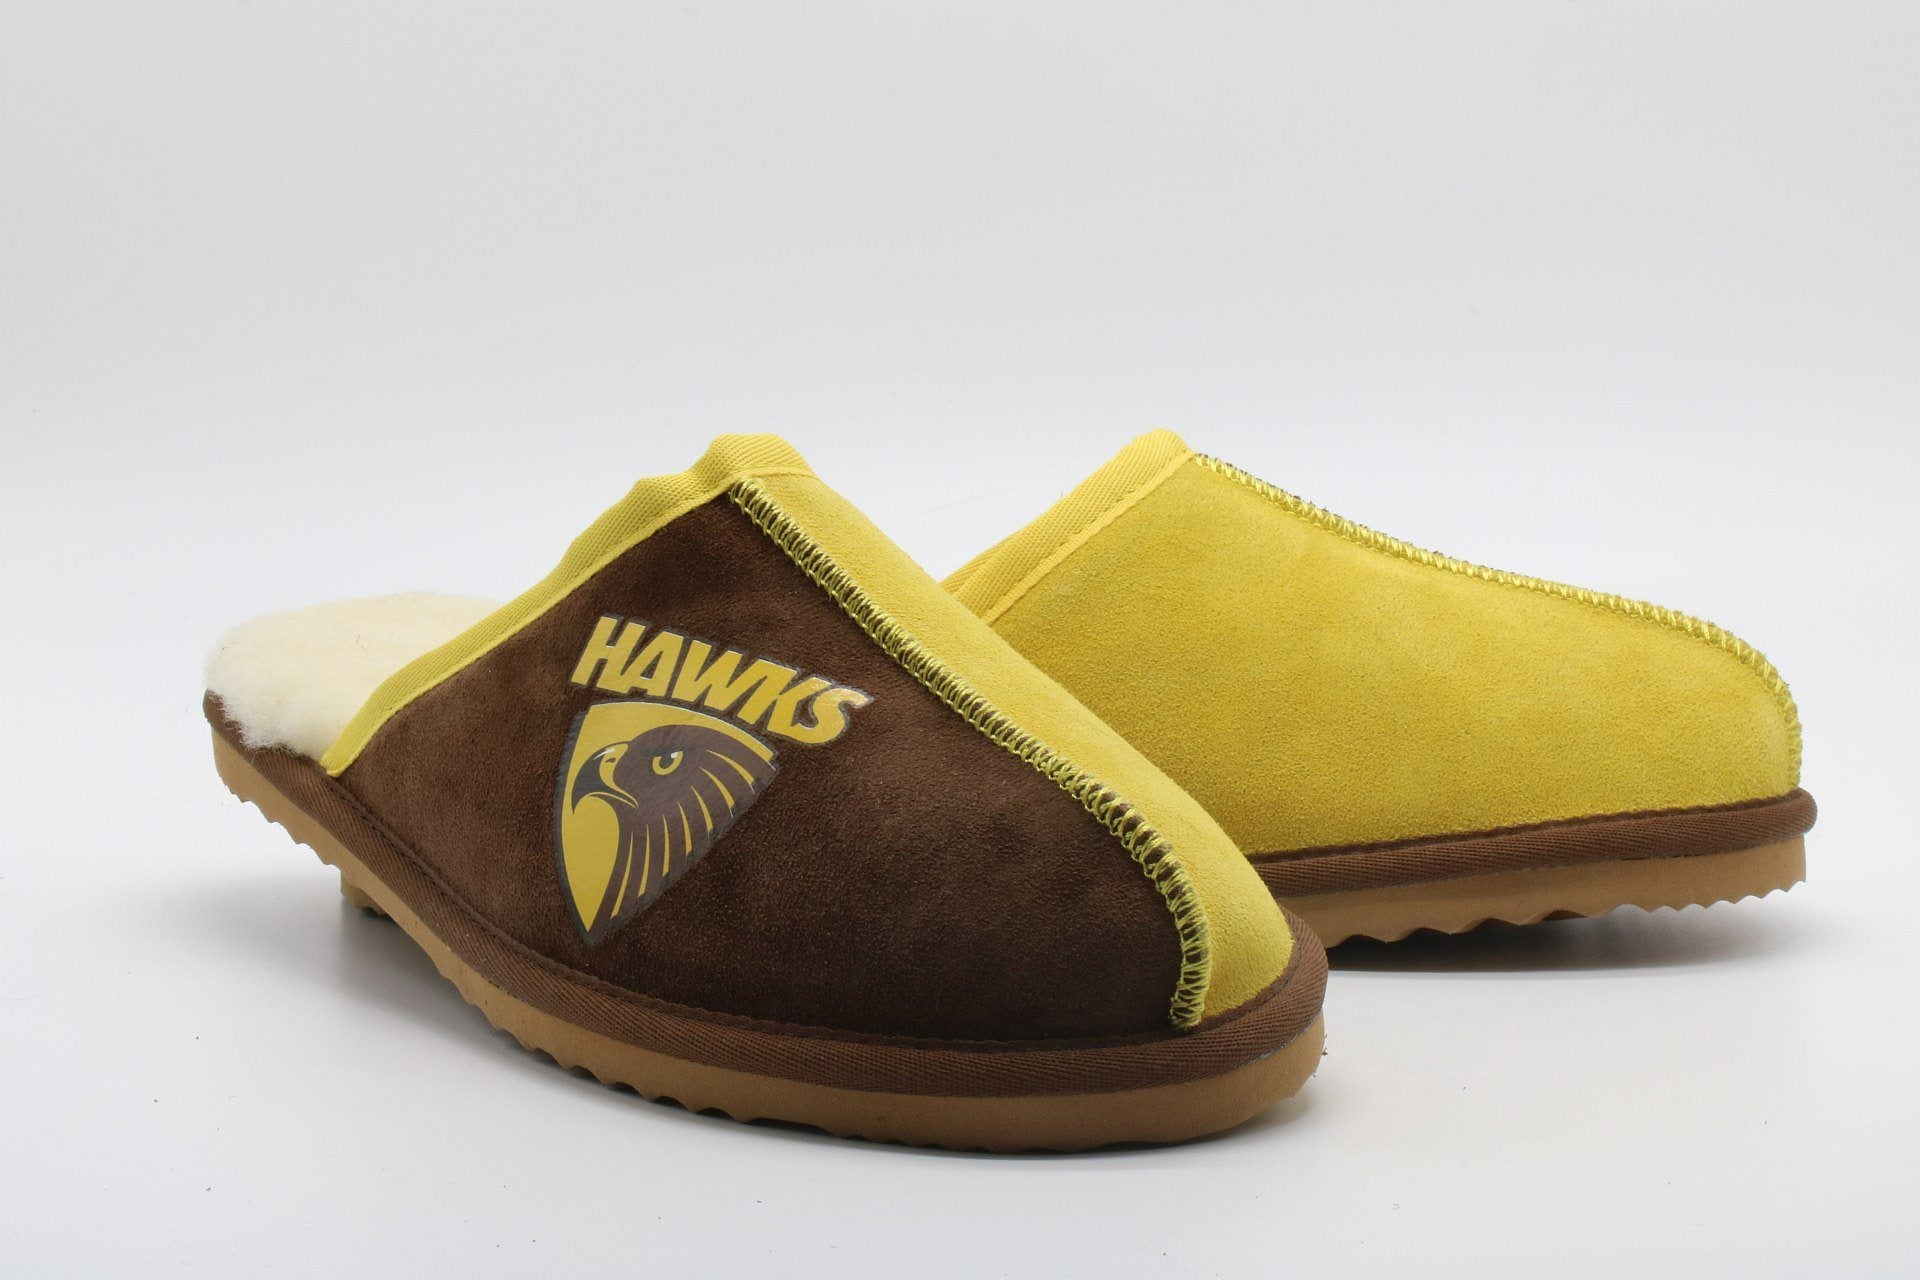 AFL Adults Slippers - Hawthorn Hawks Footwear Team Uggs